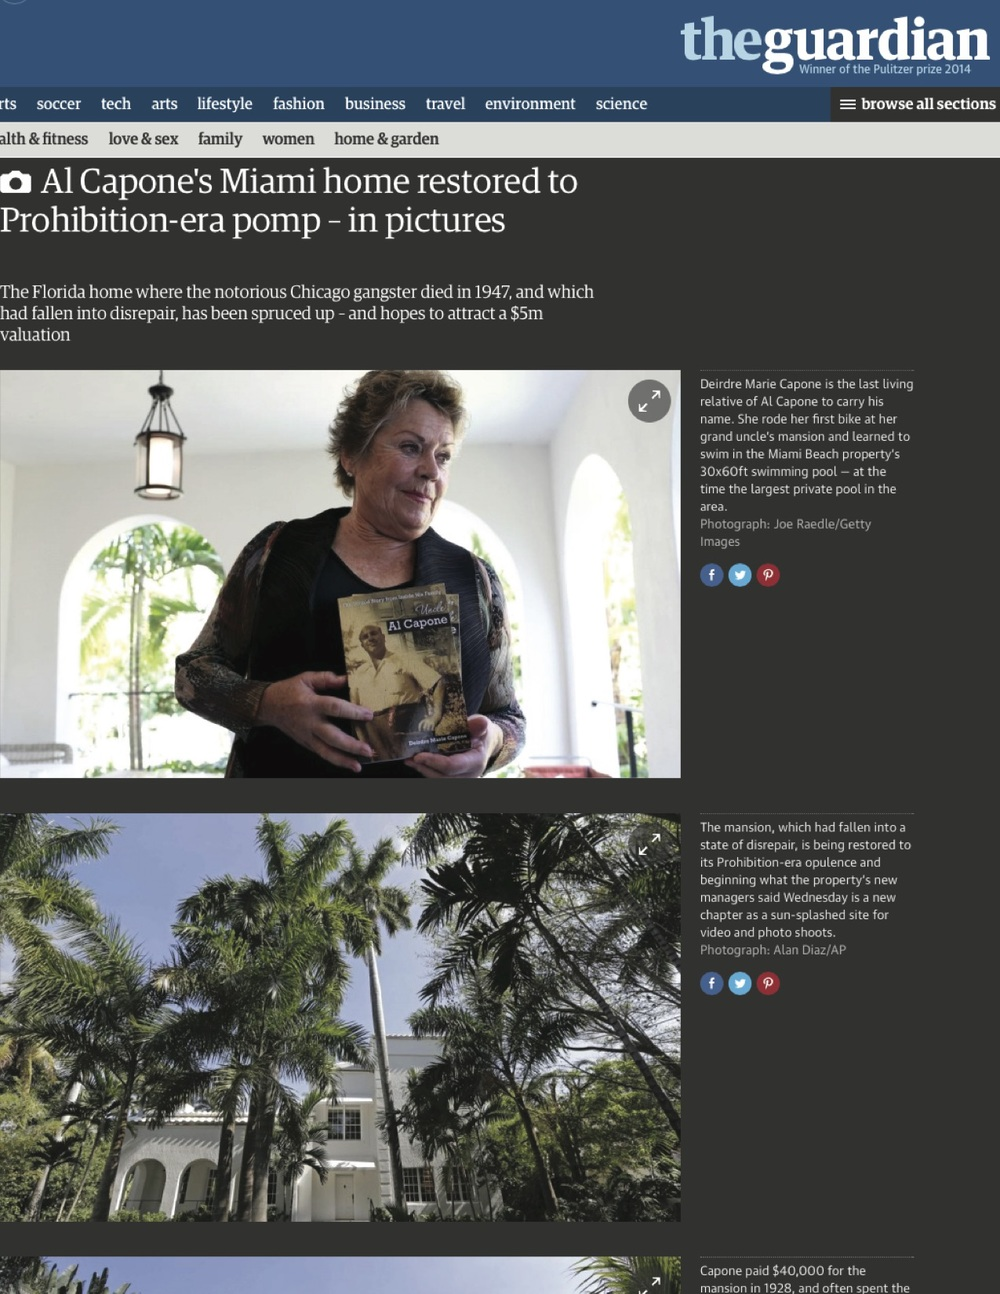 "<p><strong>The Guardian</strong><a href=""http://www.theguardian.com/lifeandstyle/gallery/2015/mar/18/al-capone-miami-beach-home-restored"" target=""_blank"">View Article →</a></p>"